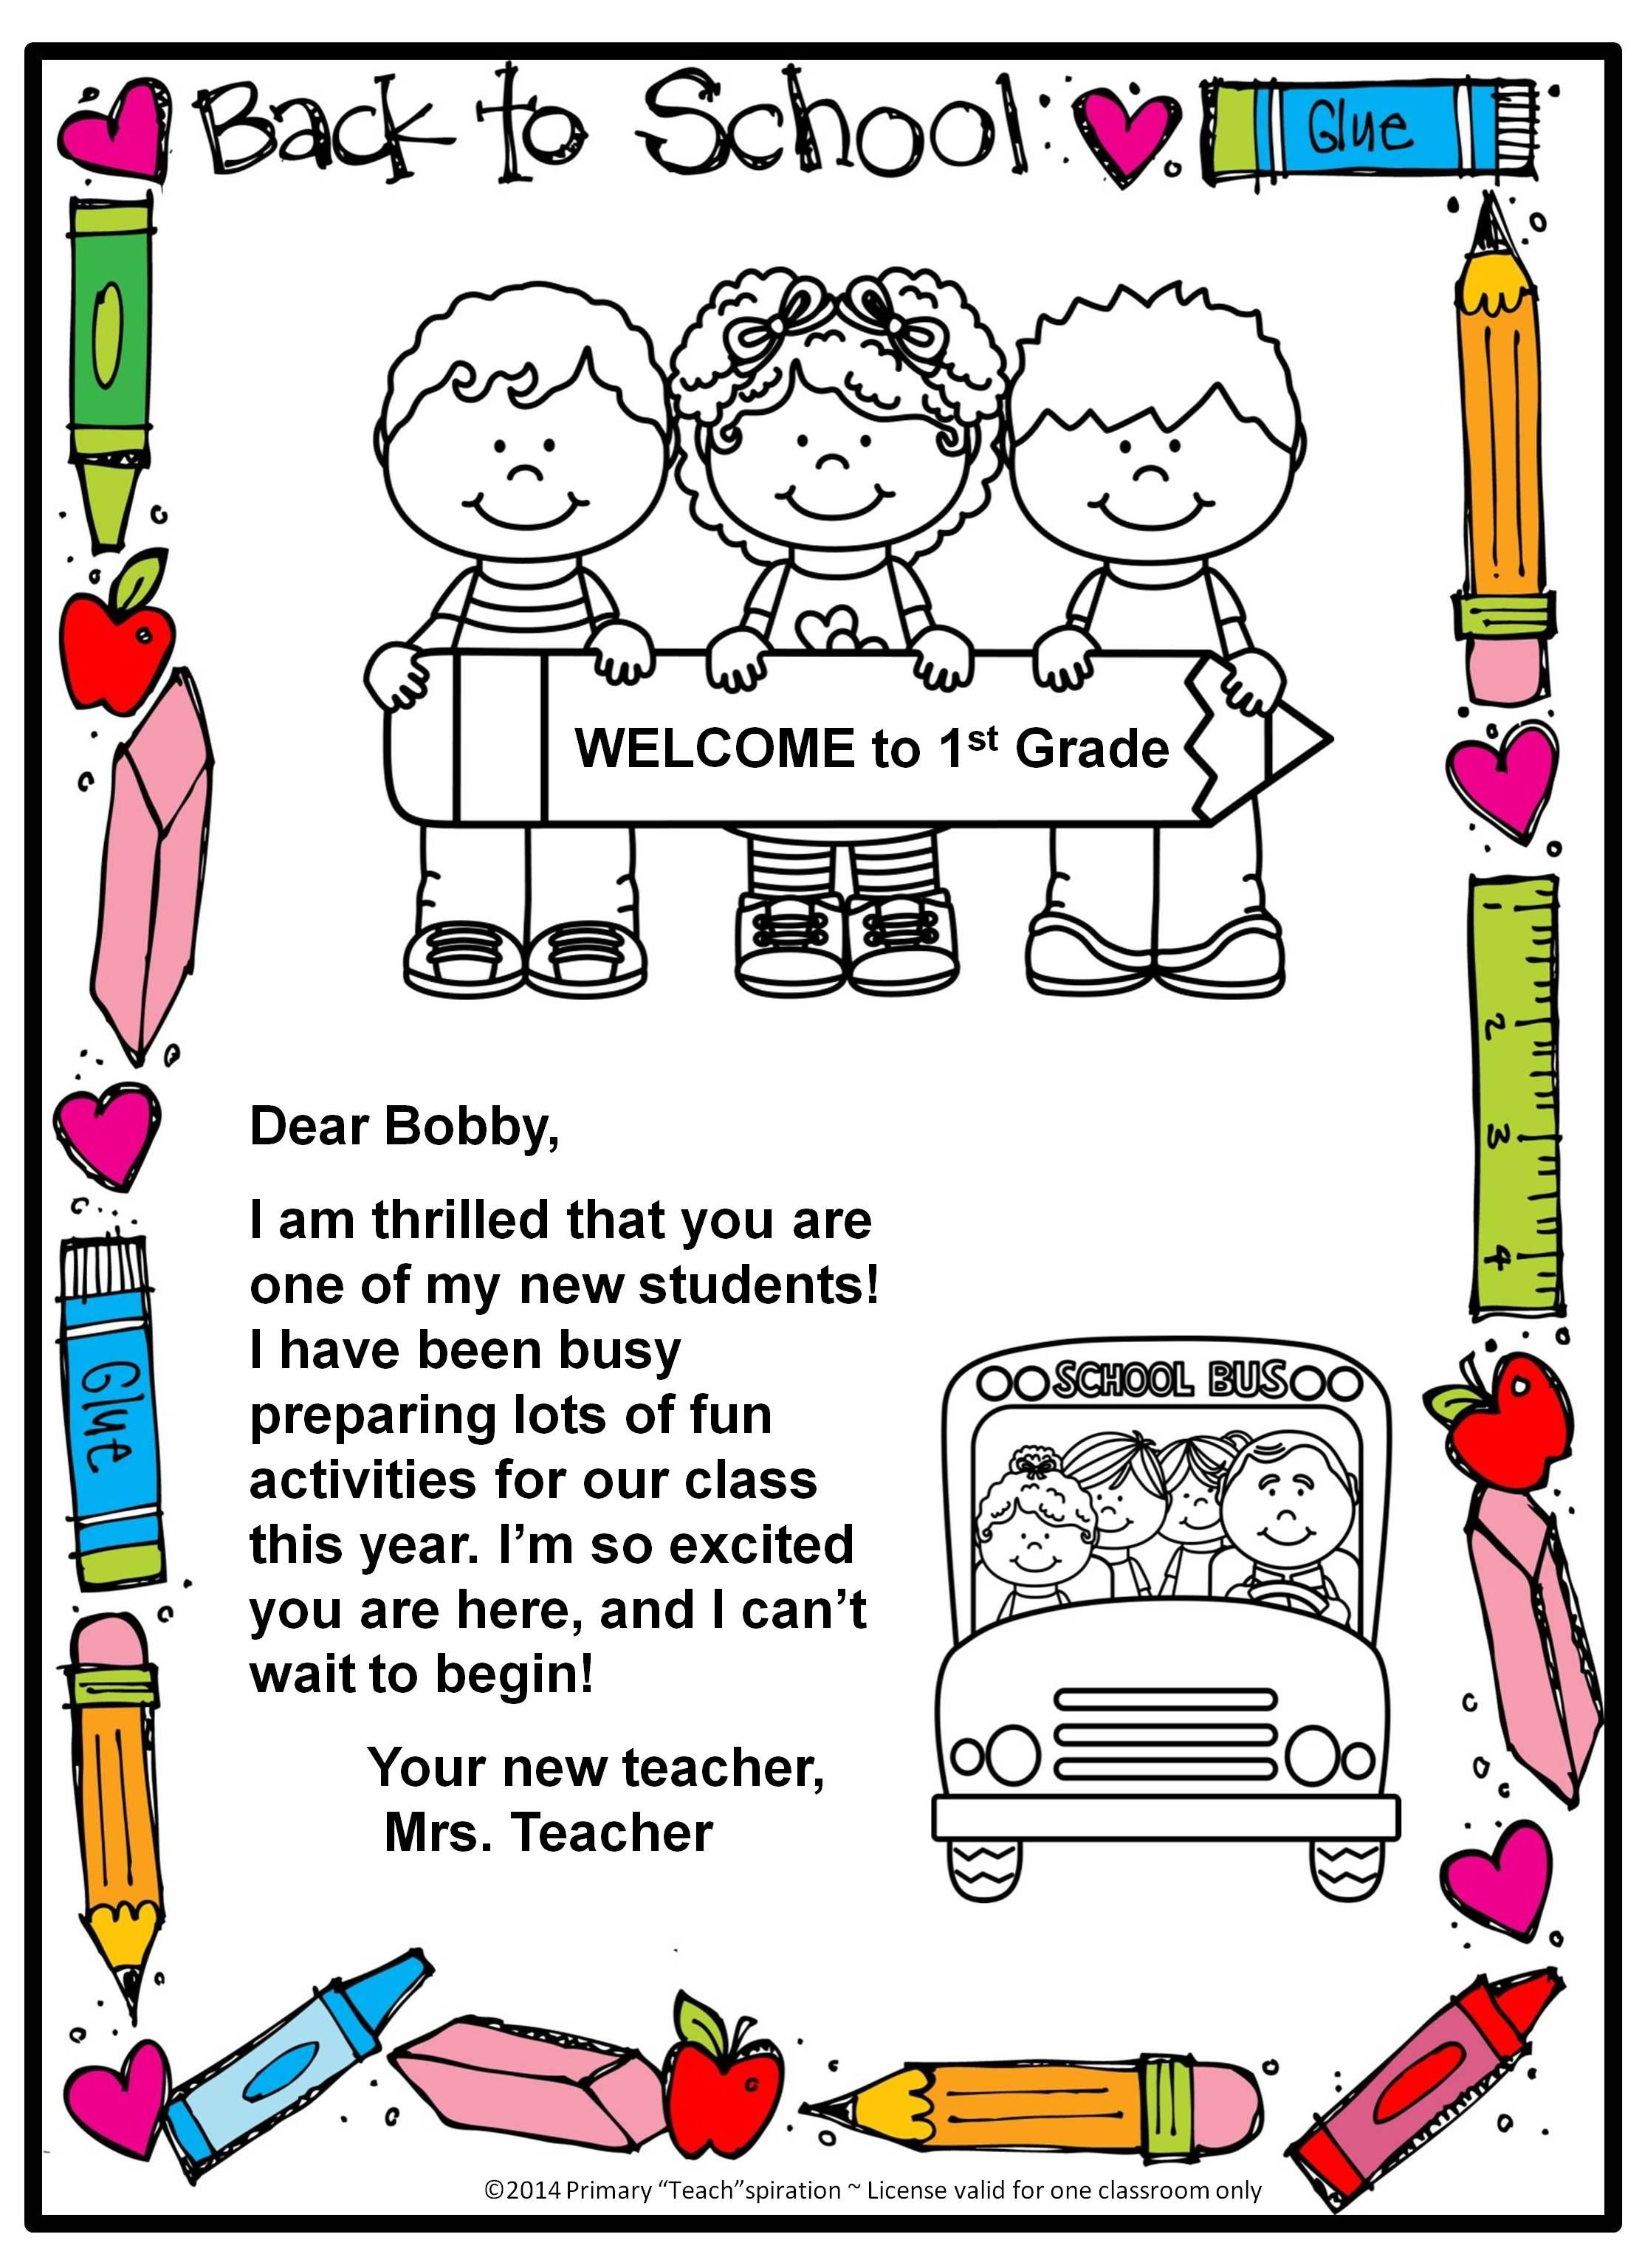 Preschool Welcome Letter Template - Free Back to School Wel E Letter and Postcard Editable